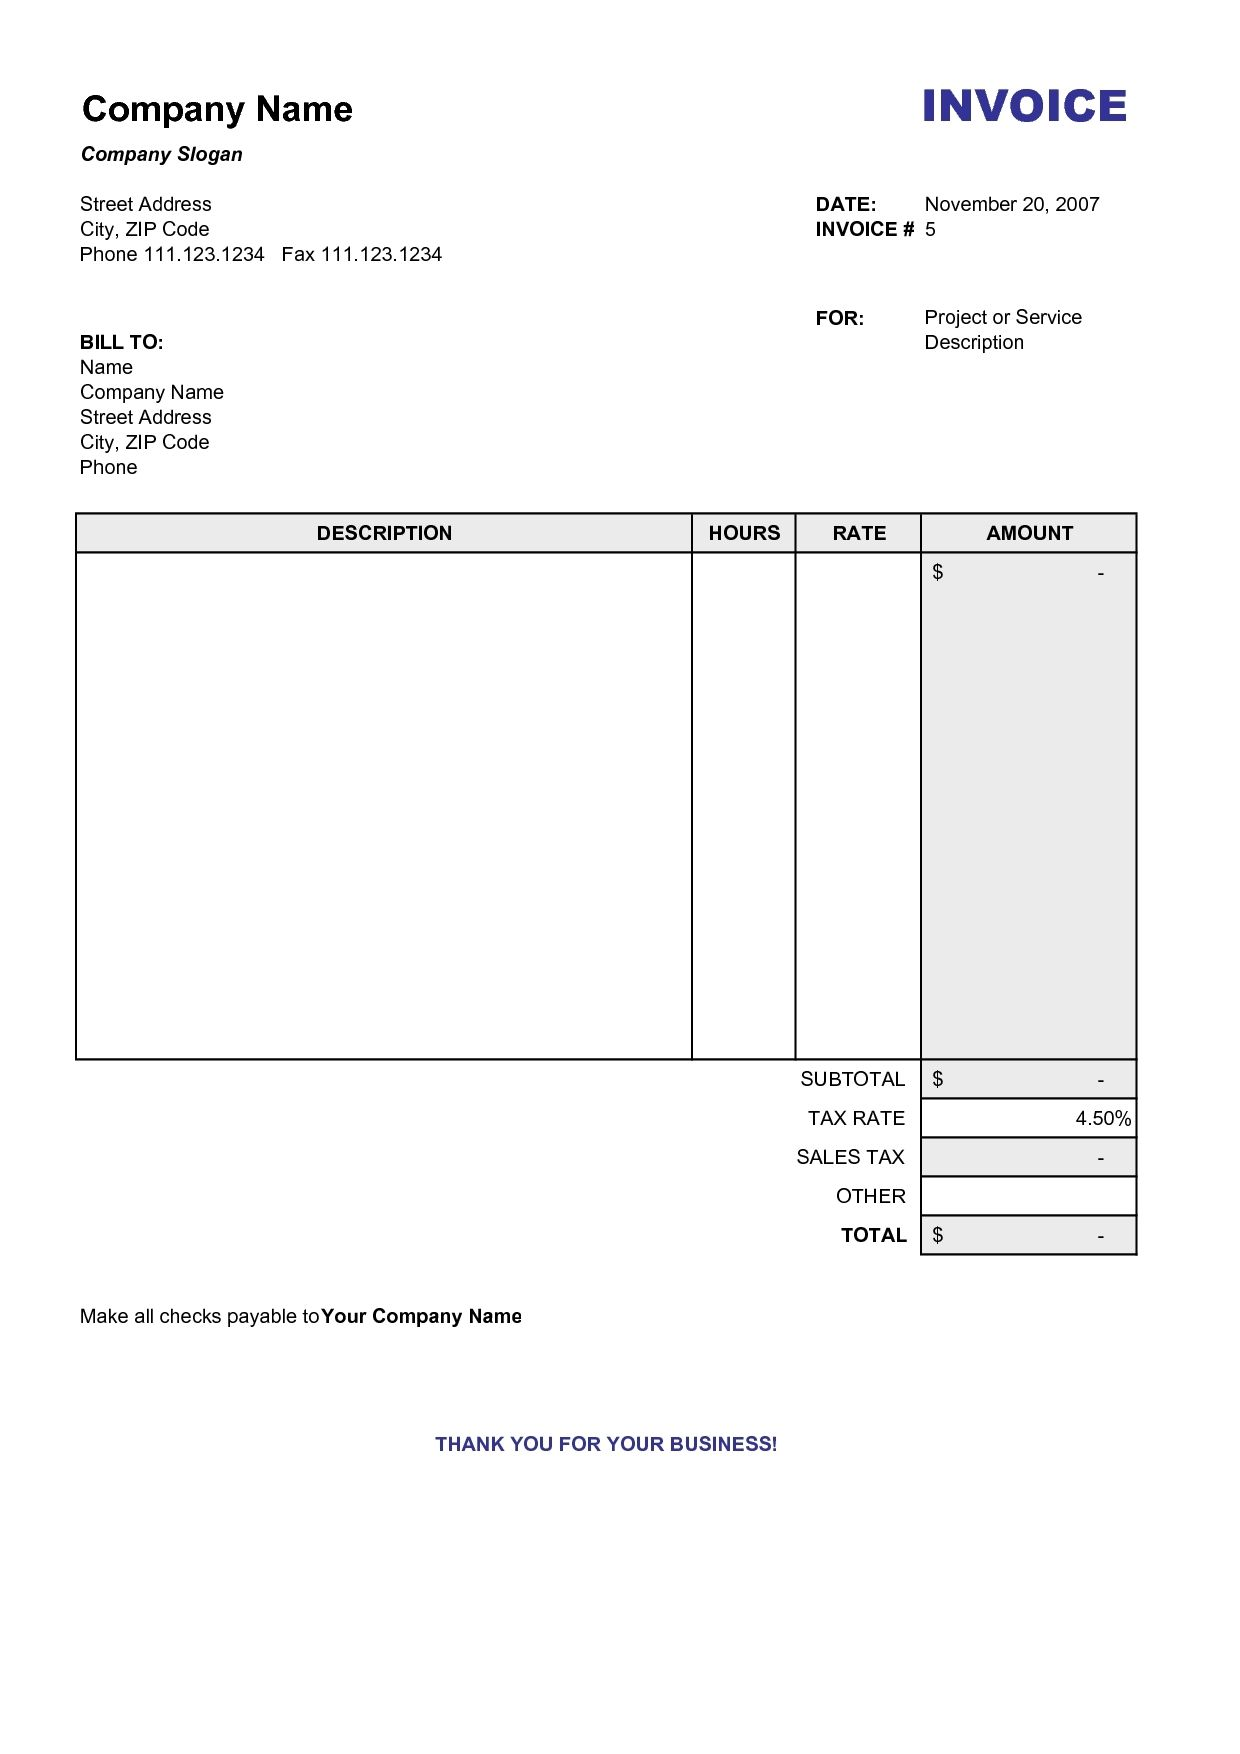 copy of a blank invoice invoice template free 2016 copy of blank, Invoice templates